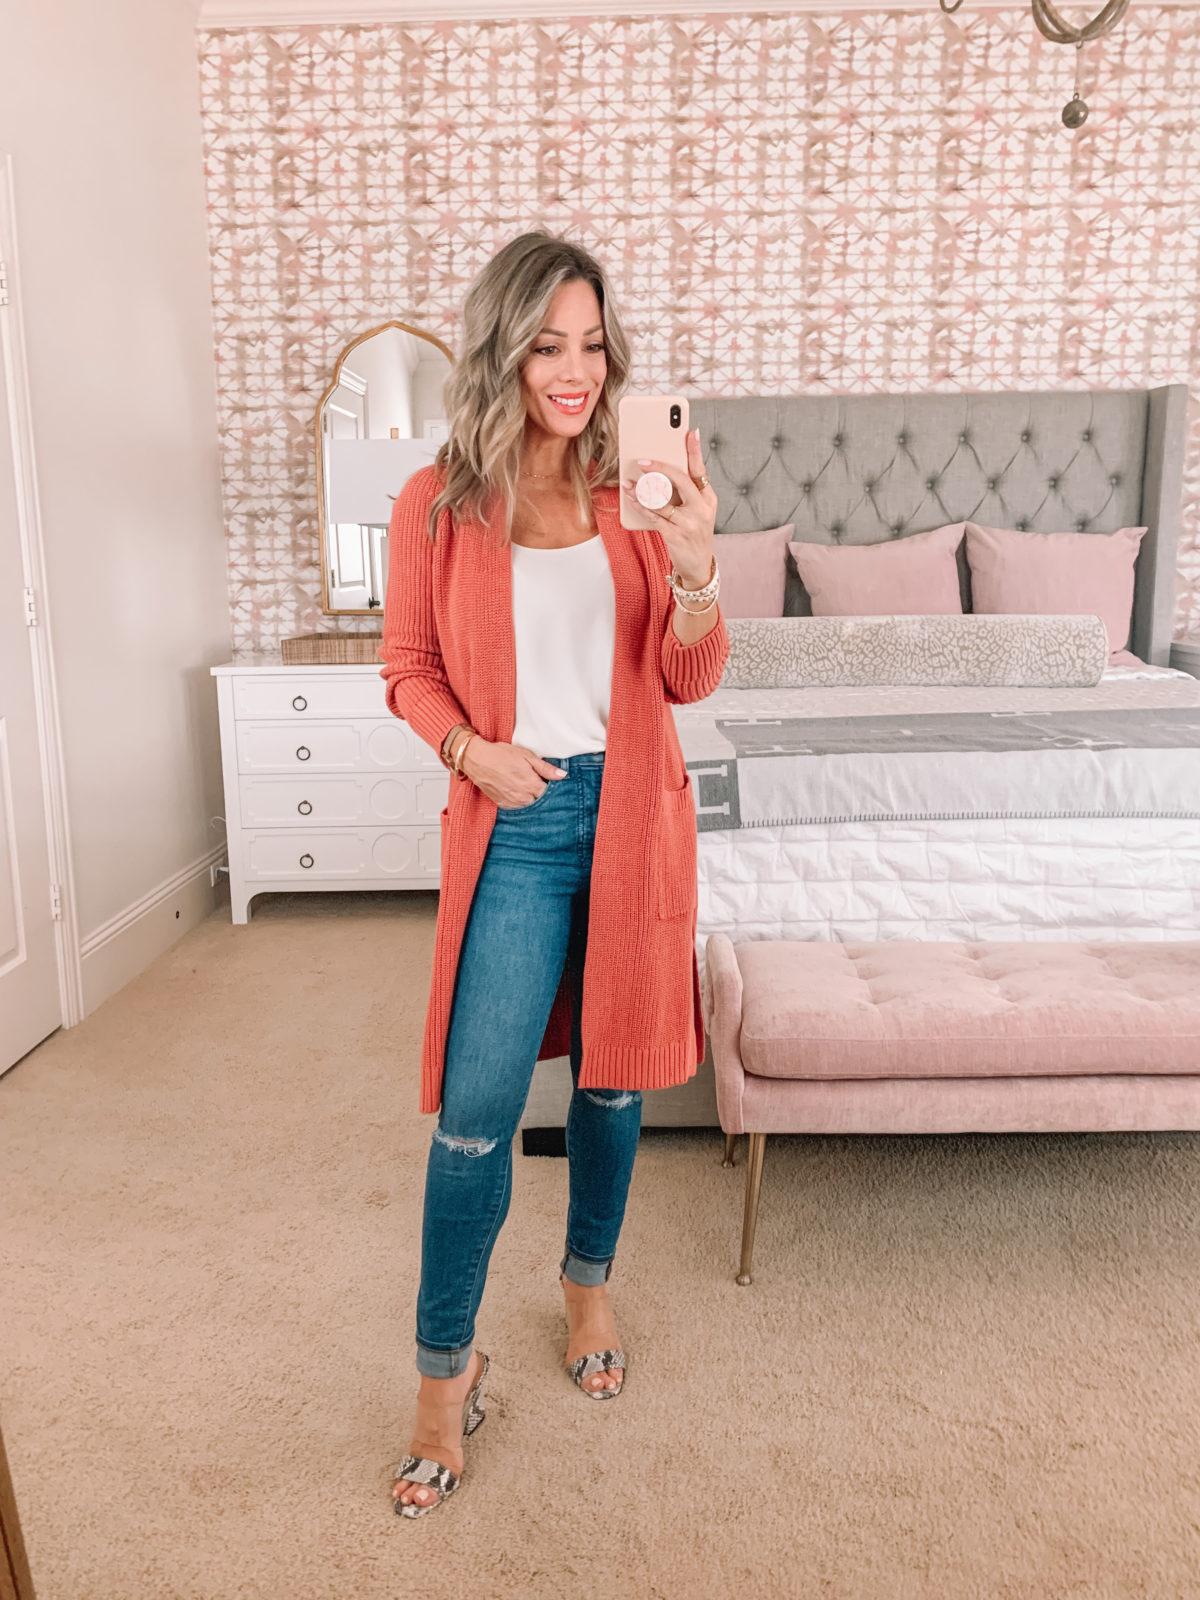 Dressing Room Finds Nordstrom, LOFT, Revolve, Cami , Cardigan, jeans, Sandals